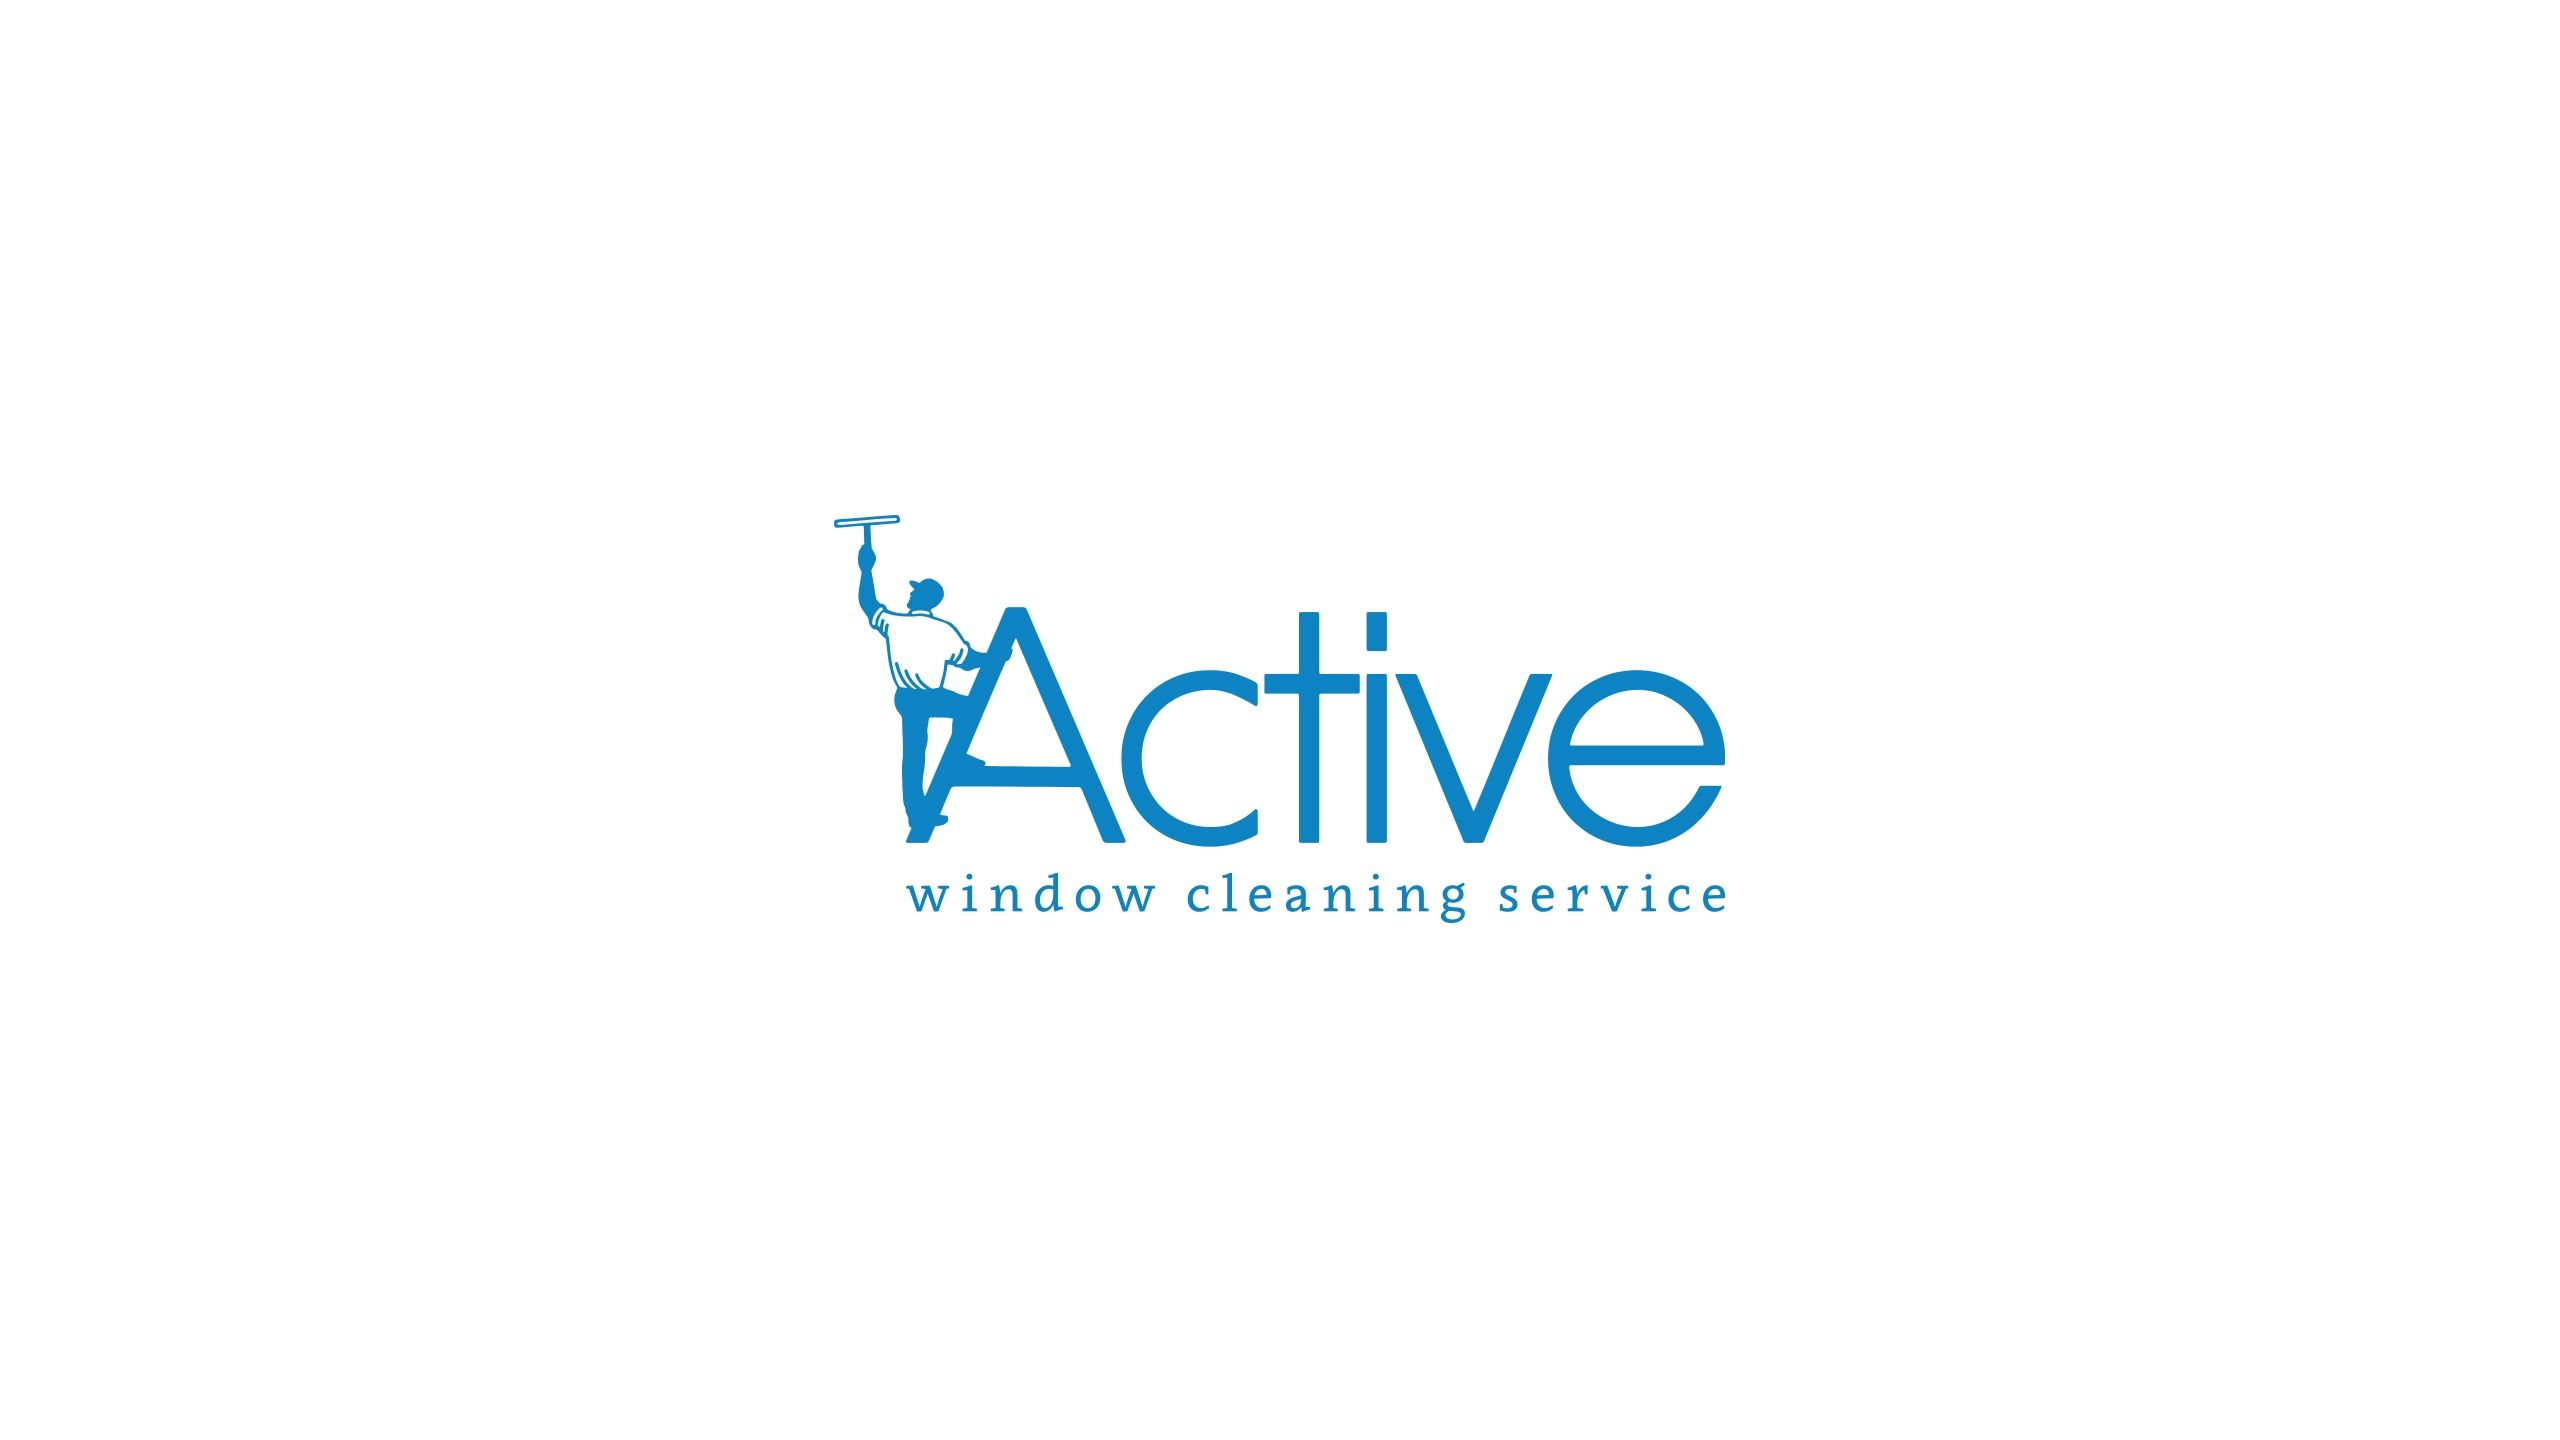 30 Best Of Cleaning Company Logo Ideas Cleaning Company Logo Cleaning Companies Company Logo